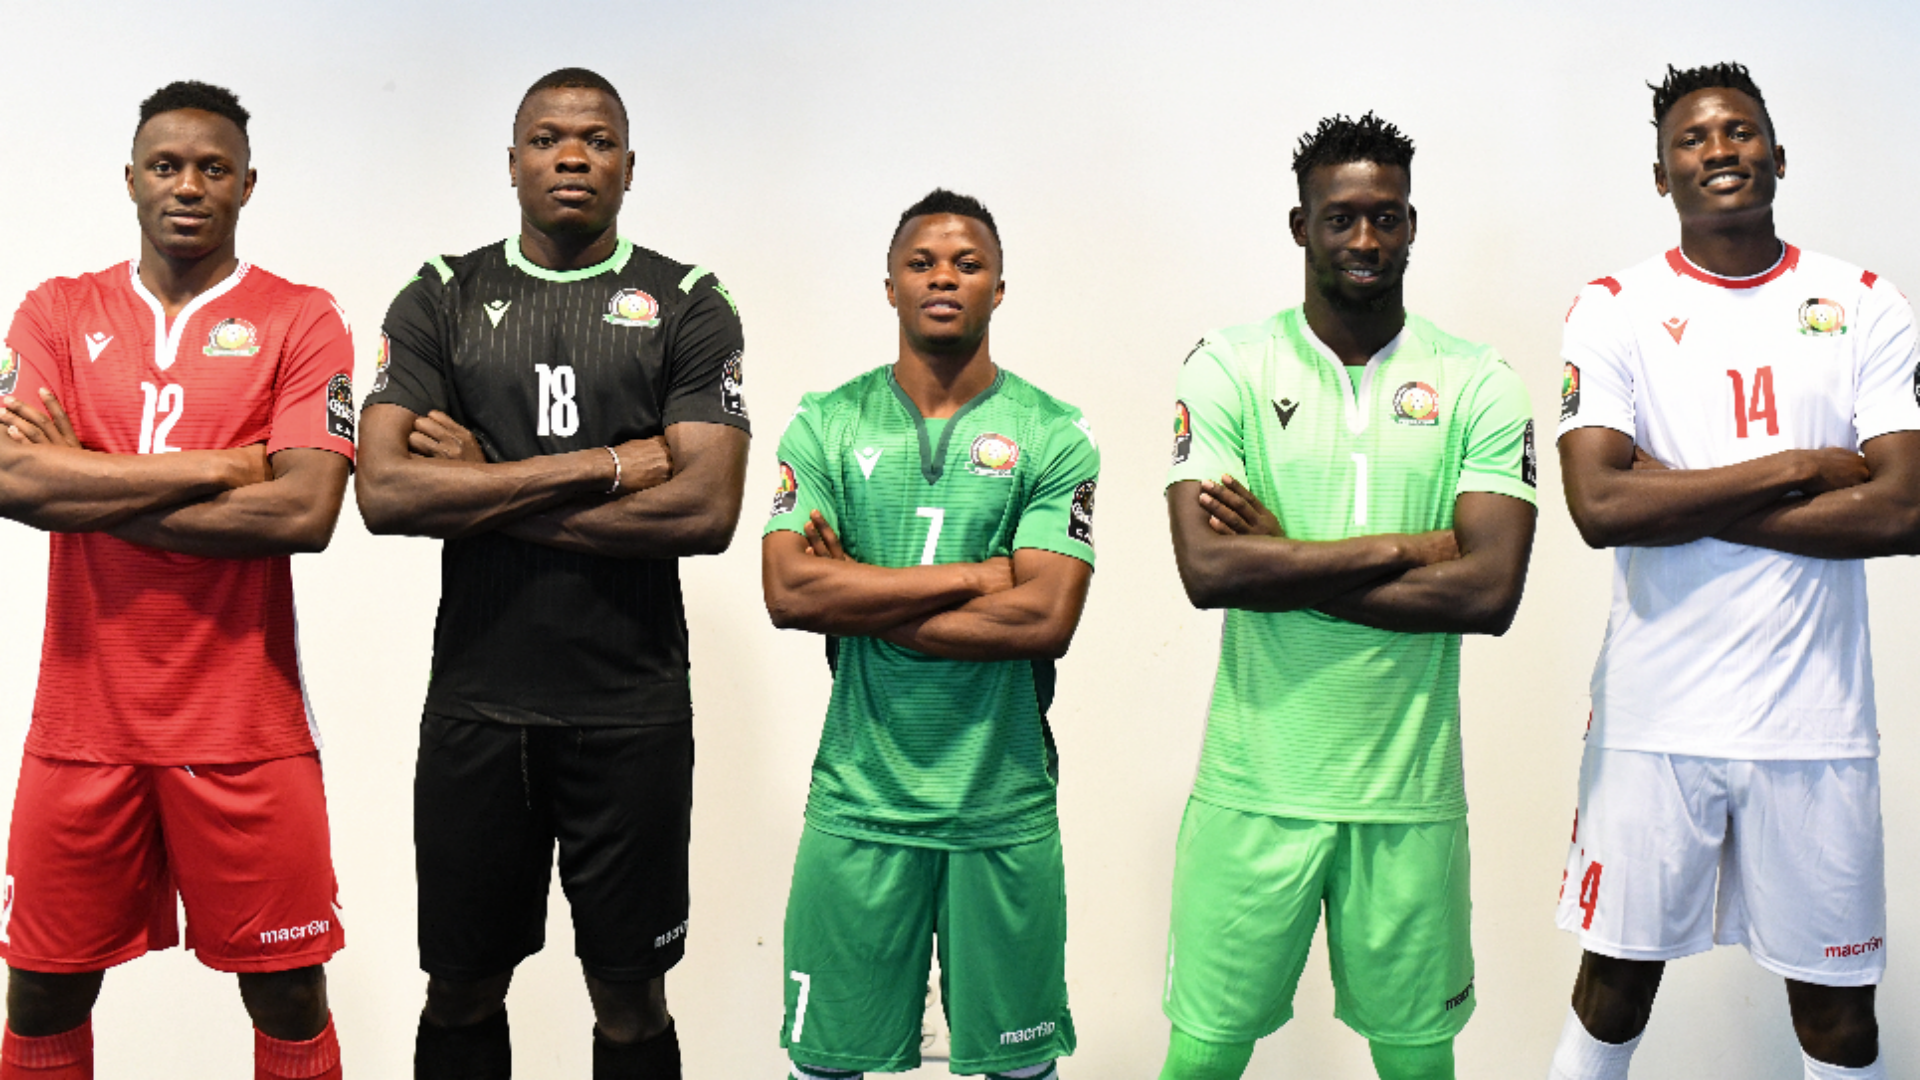 Afcon: Harambee Stars replica jersey up for sale after FKF open online shop